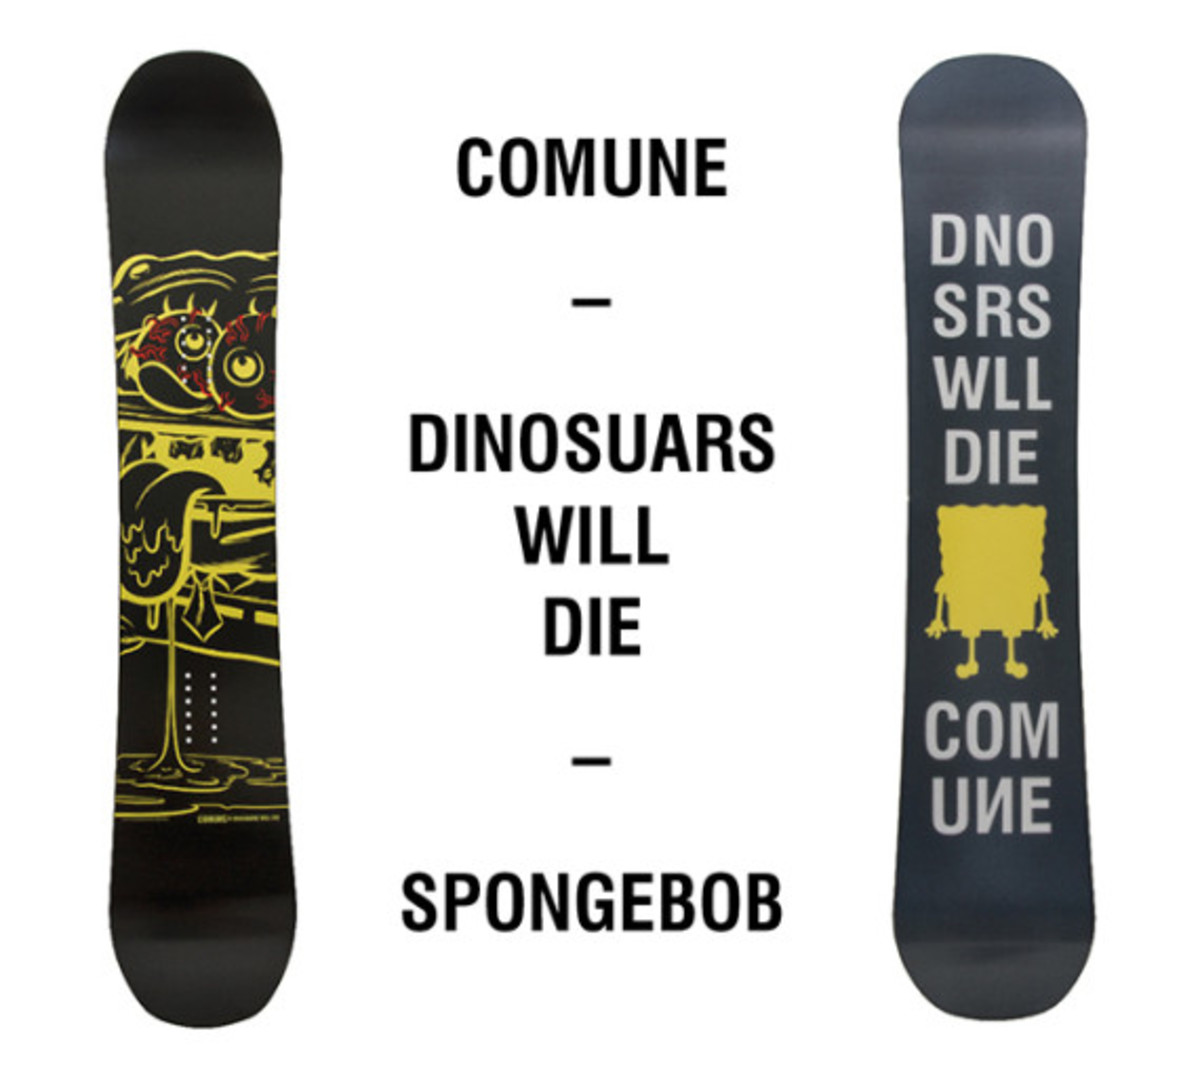 spongebob-squarepants-comune-collaboration-capsule-02